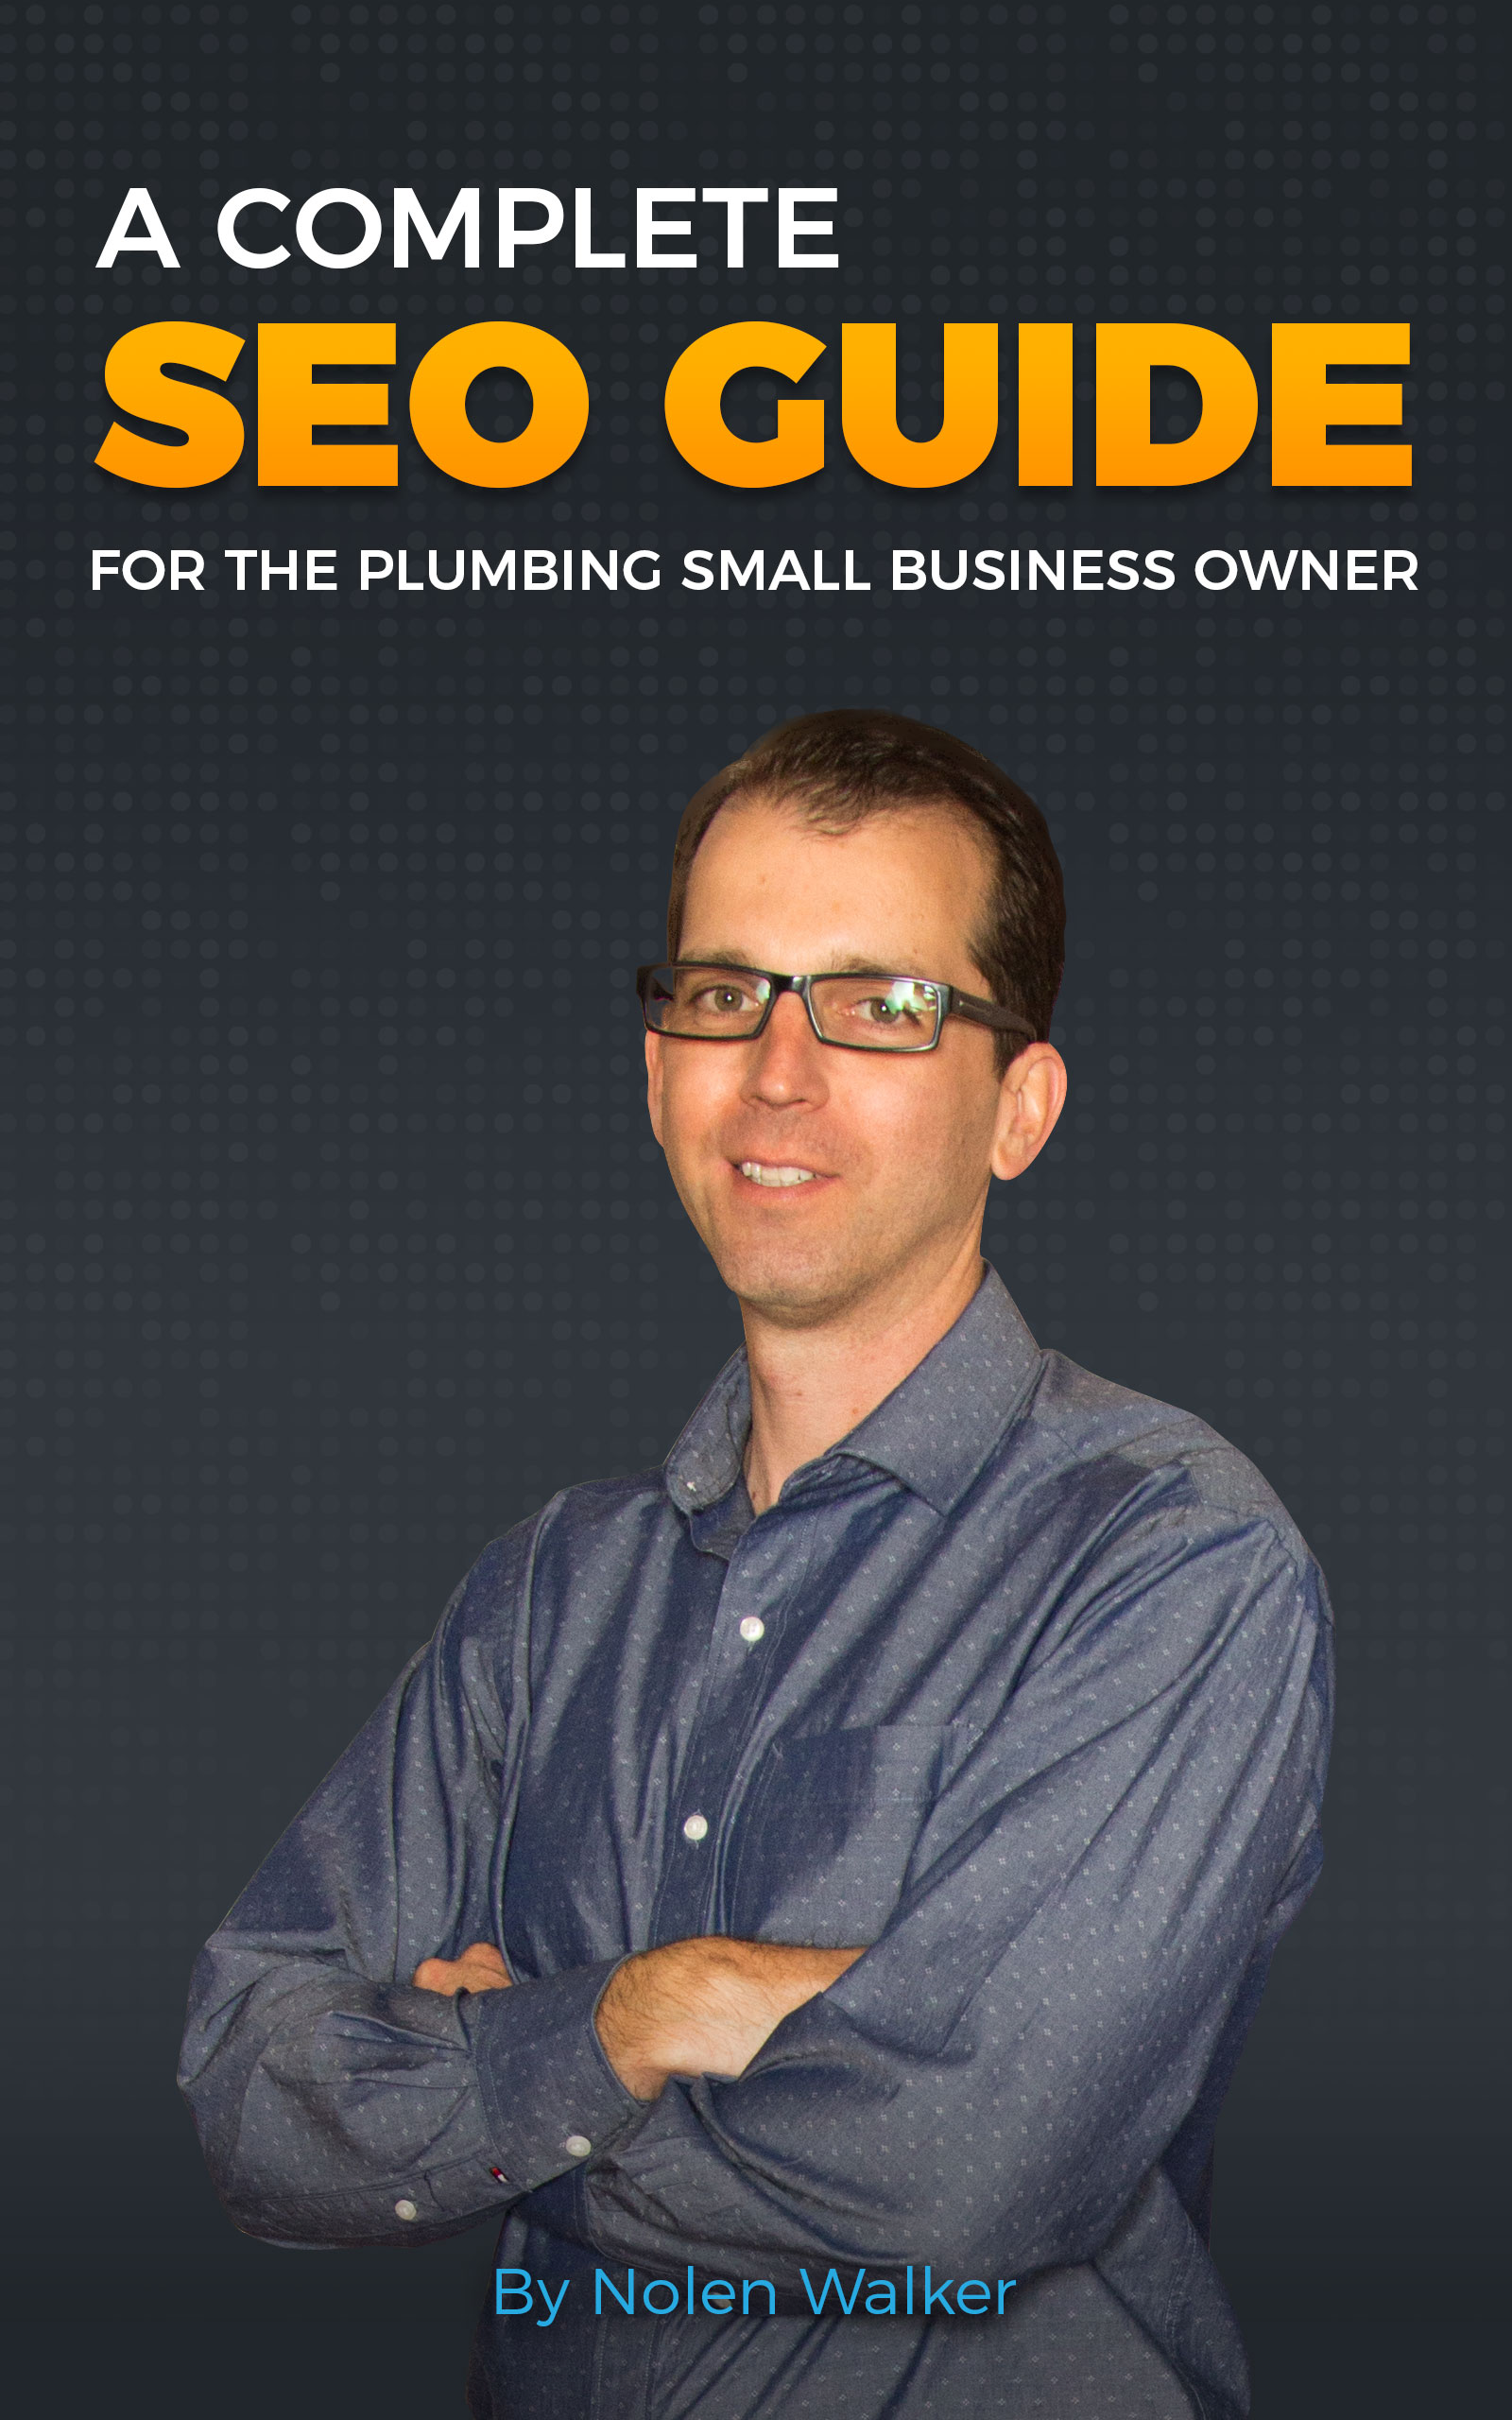 A Complete SEO Guide For The Plumbing Small Business Owner